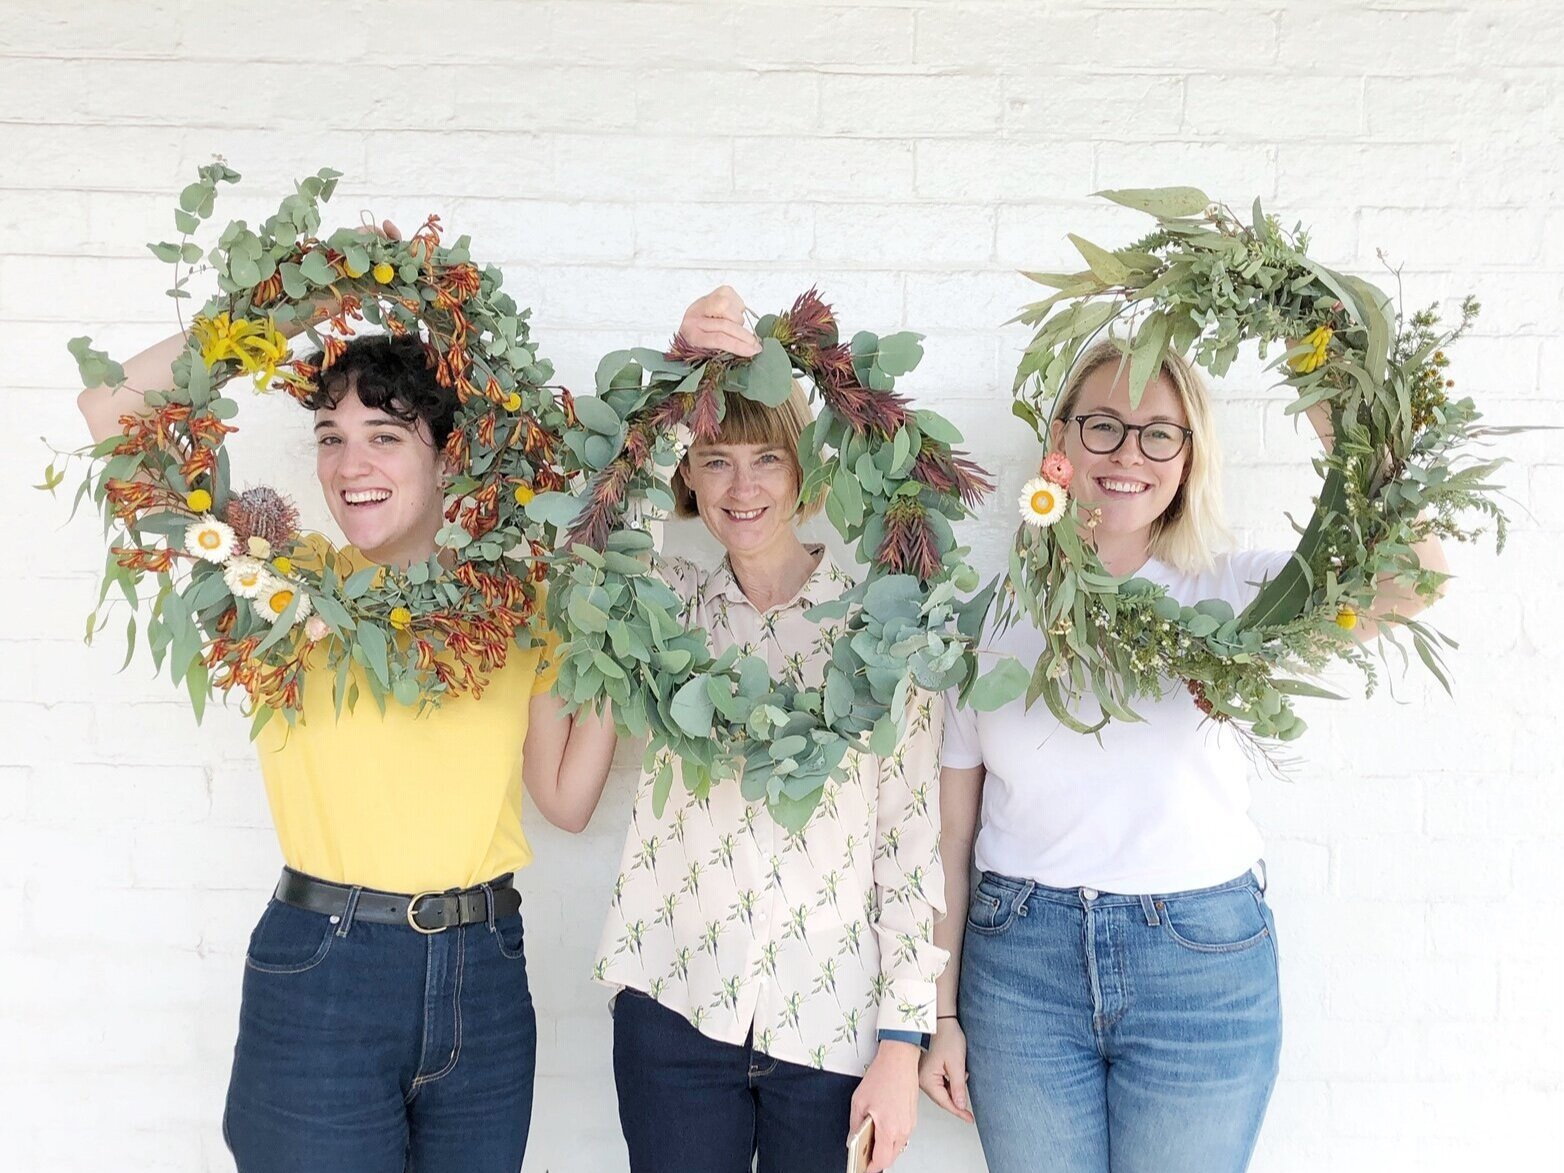 Native Wreath Workshop - $90 per person, 4-12 people, 2 hours